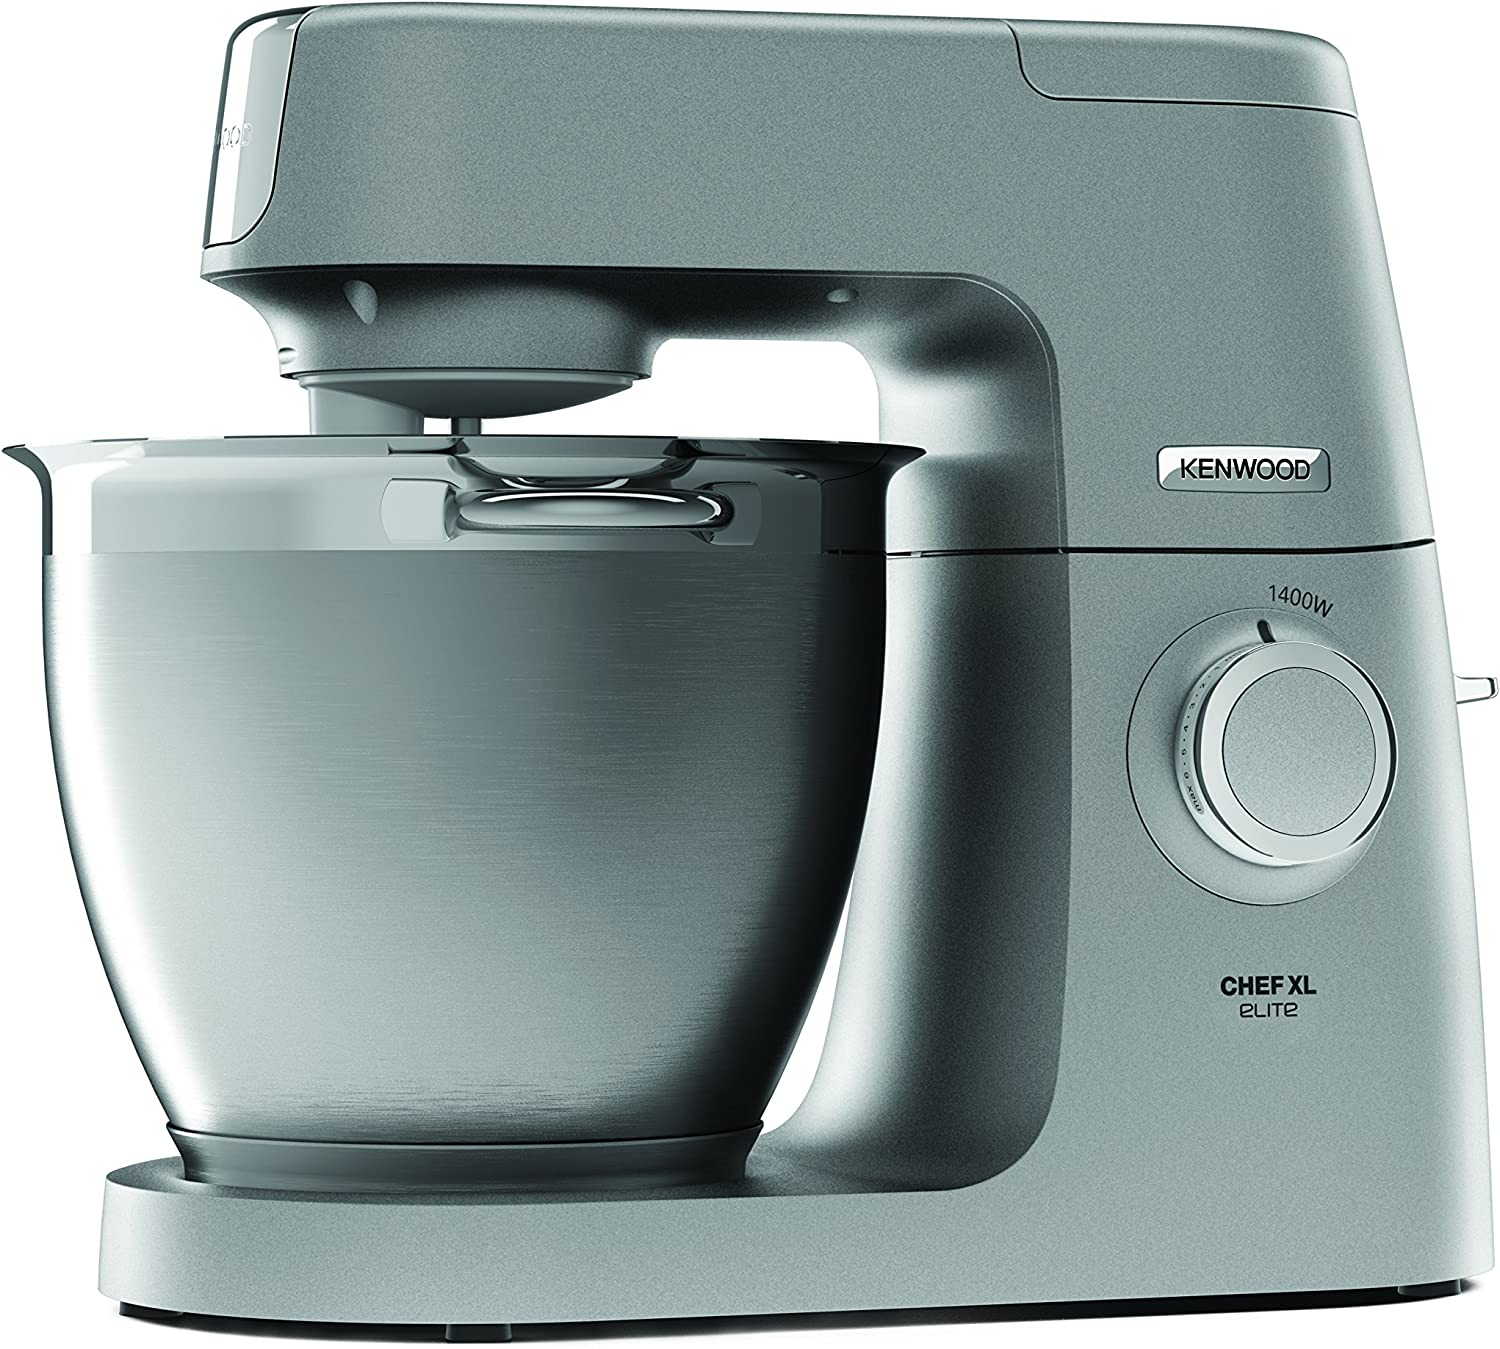 Kenwood KVL6330S Kitchen Machine Chef Elite, plata: Amazon.es: Hogar